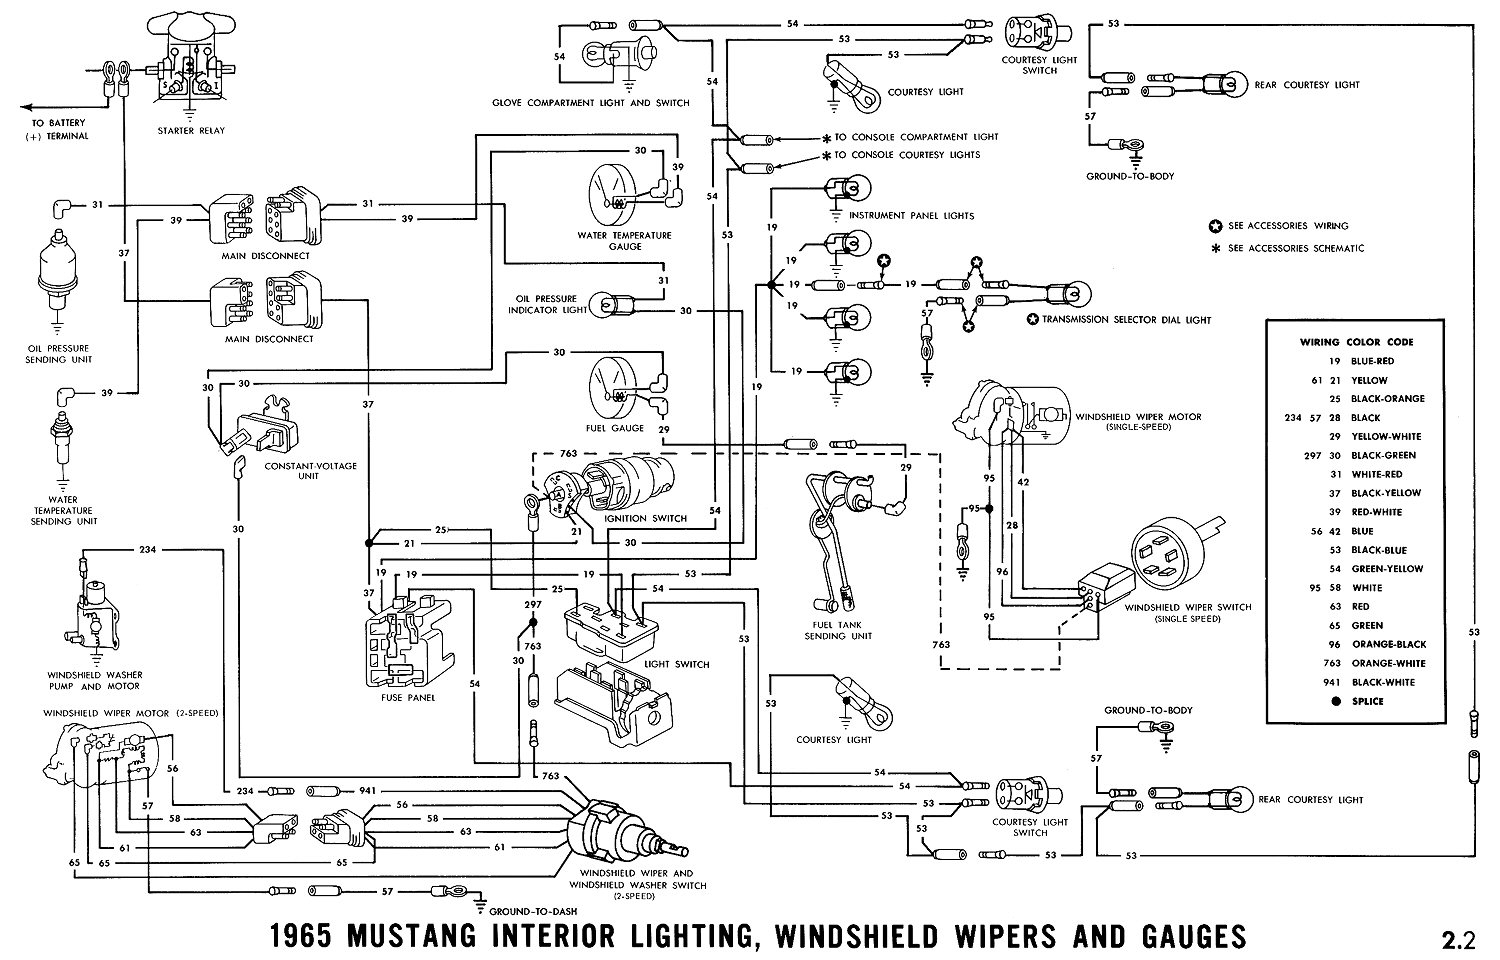 1965 ford mustang wiring diagram Collection-67 Mustang Wiring Diagram 13-a